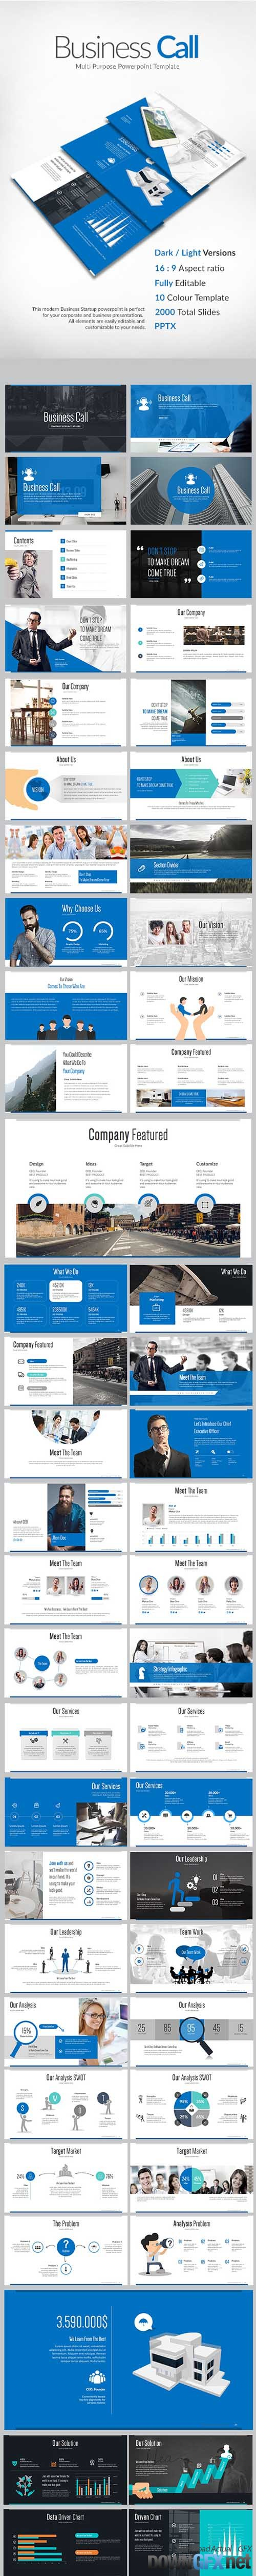 Business Call Powerpoint Presentation 17889387